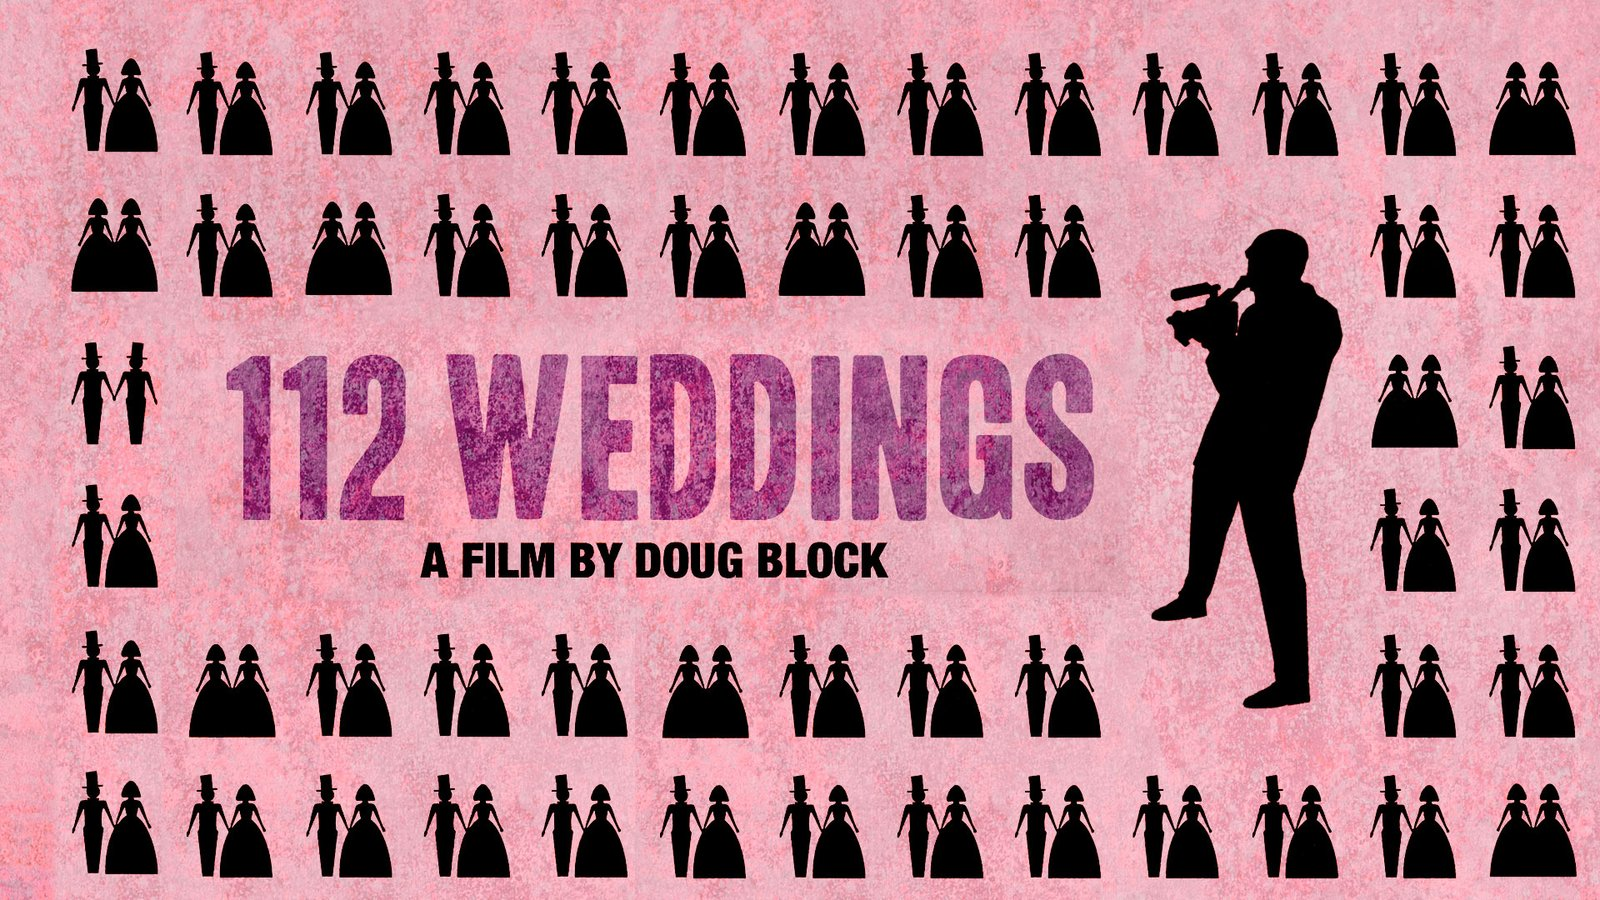 112 Weddings - Happily Ever After Is Complicated